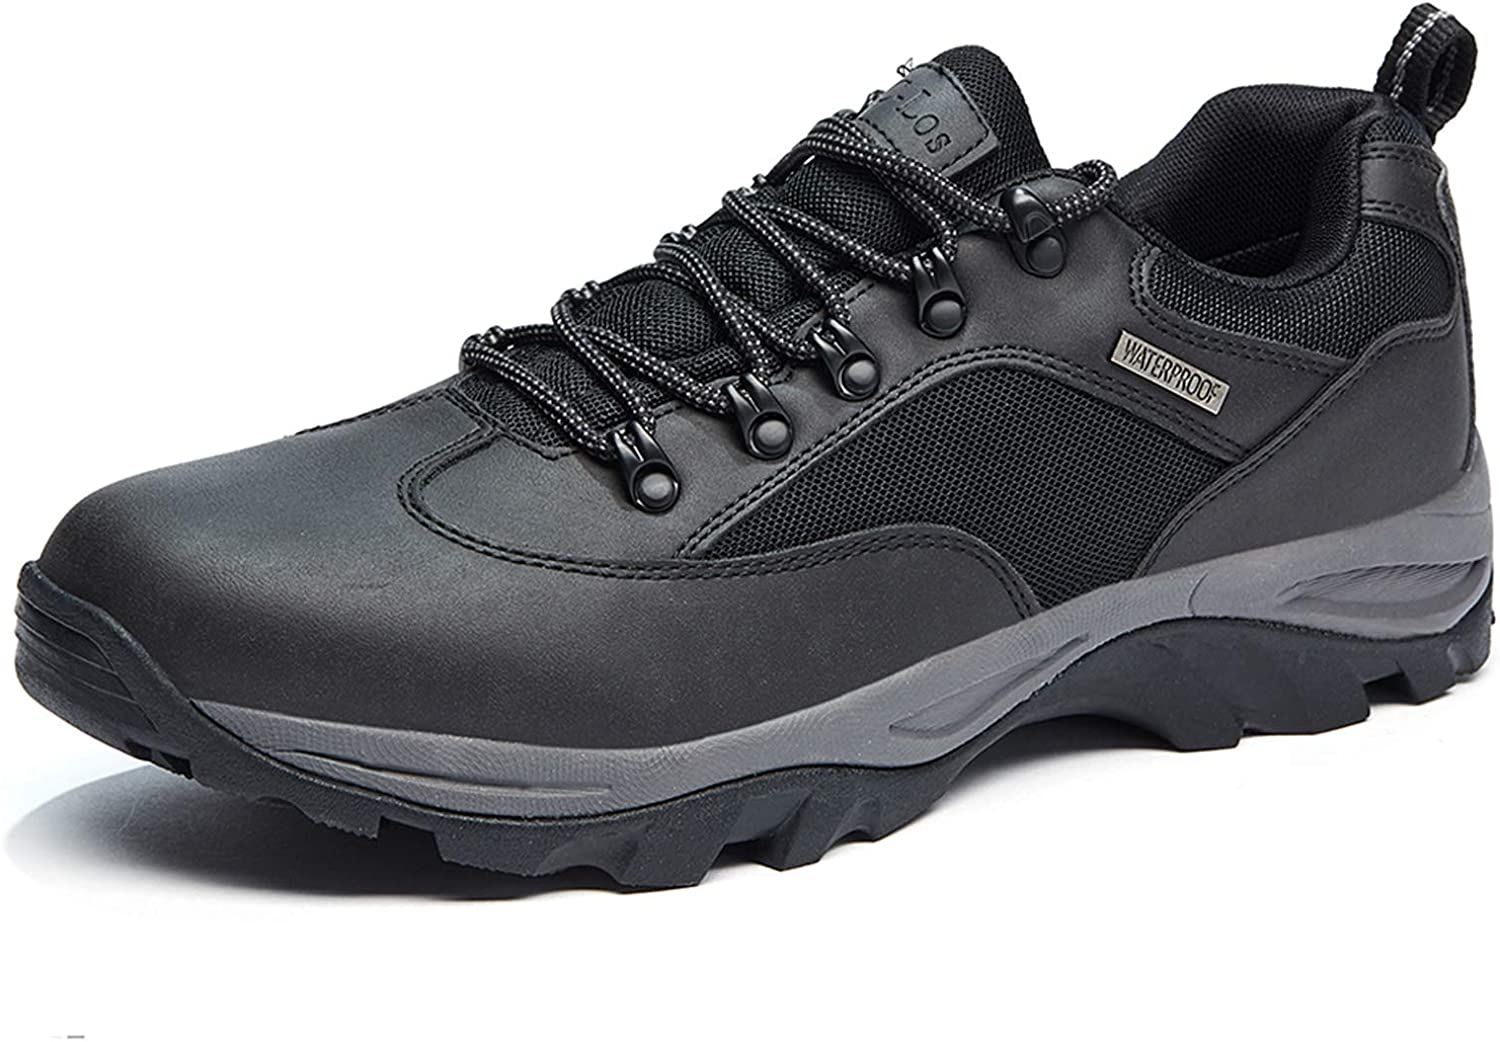 Hiking Boots Shoes Waterproof Mid Low